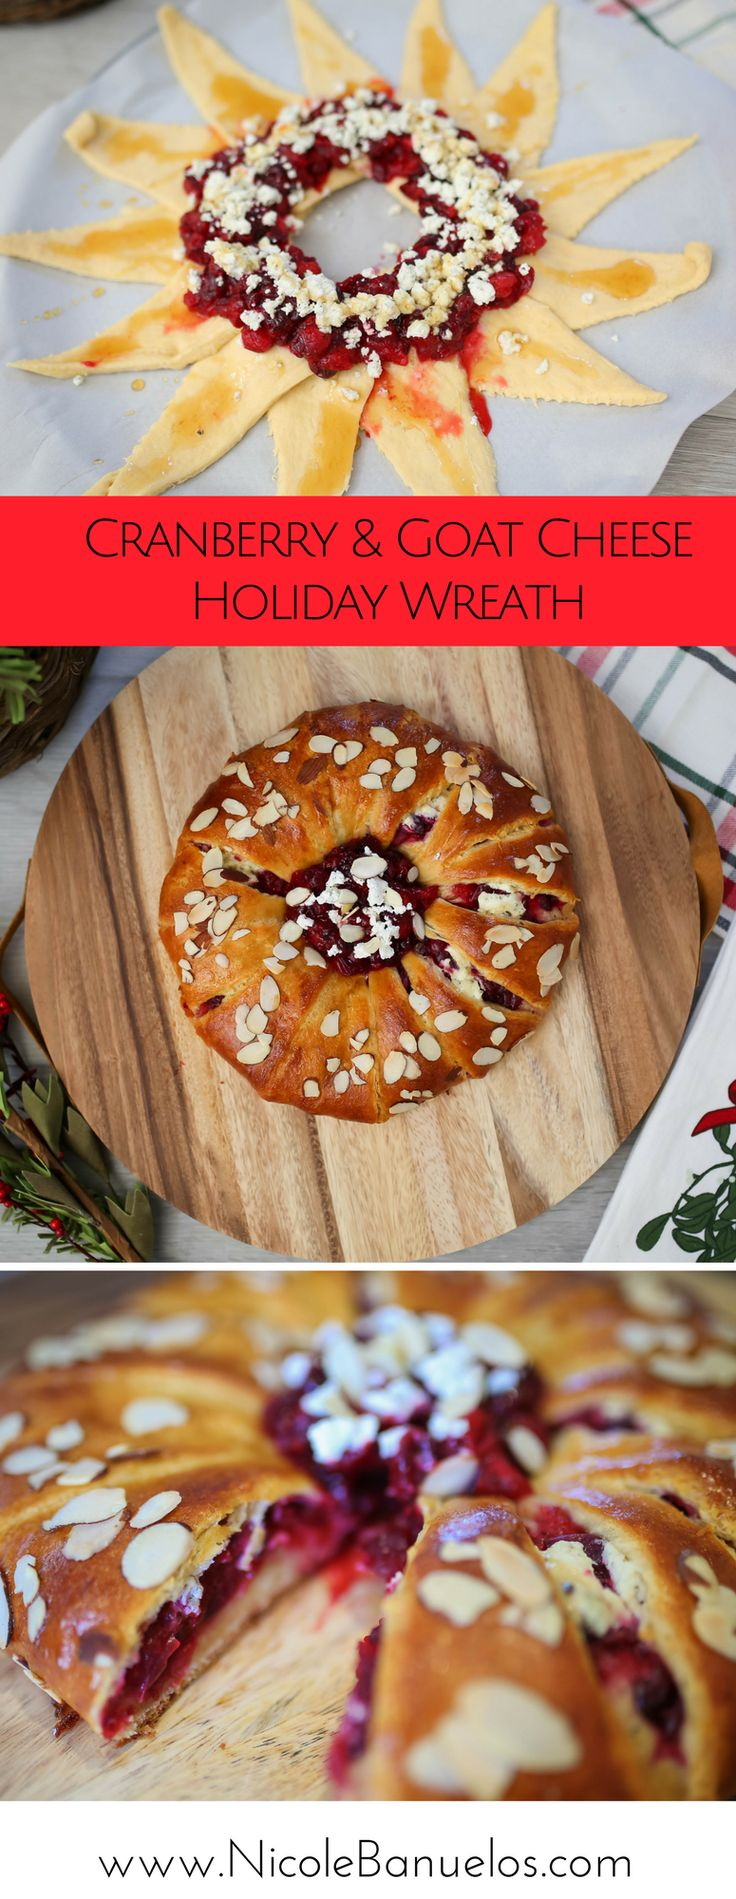 Cranberry & Goat Cheese Holiday Wreath ||  Perfect side dish for a holiday pot luck!  #joanofarcgoat #ad @joanofarc @joanofarcbrie